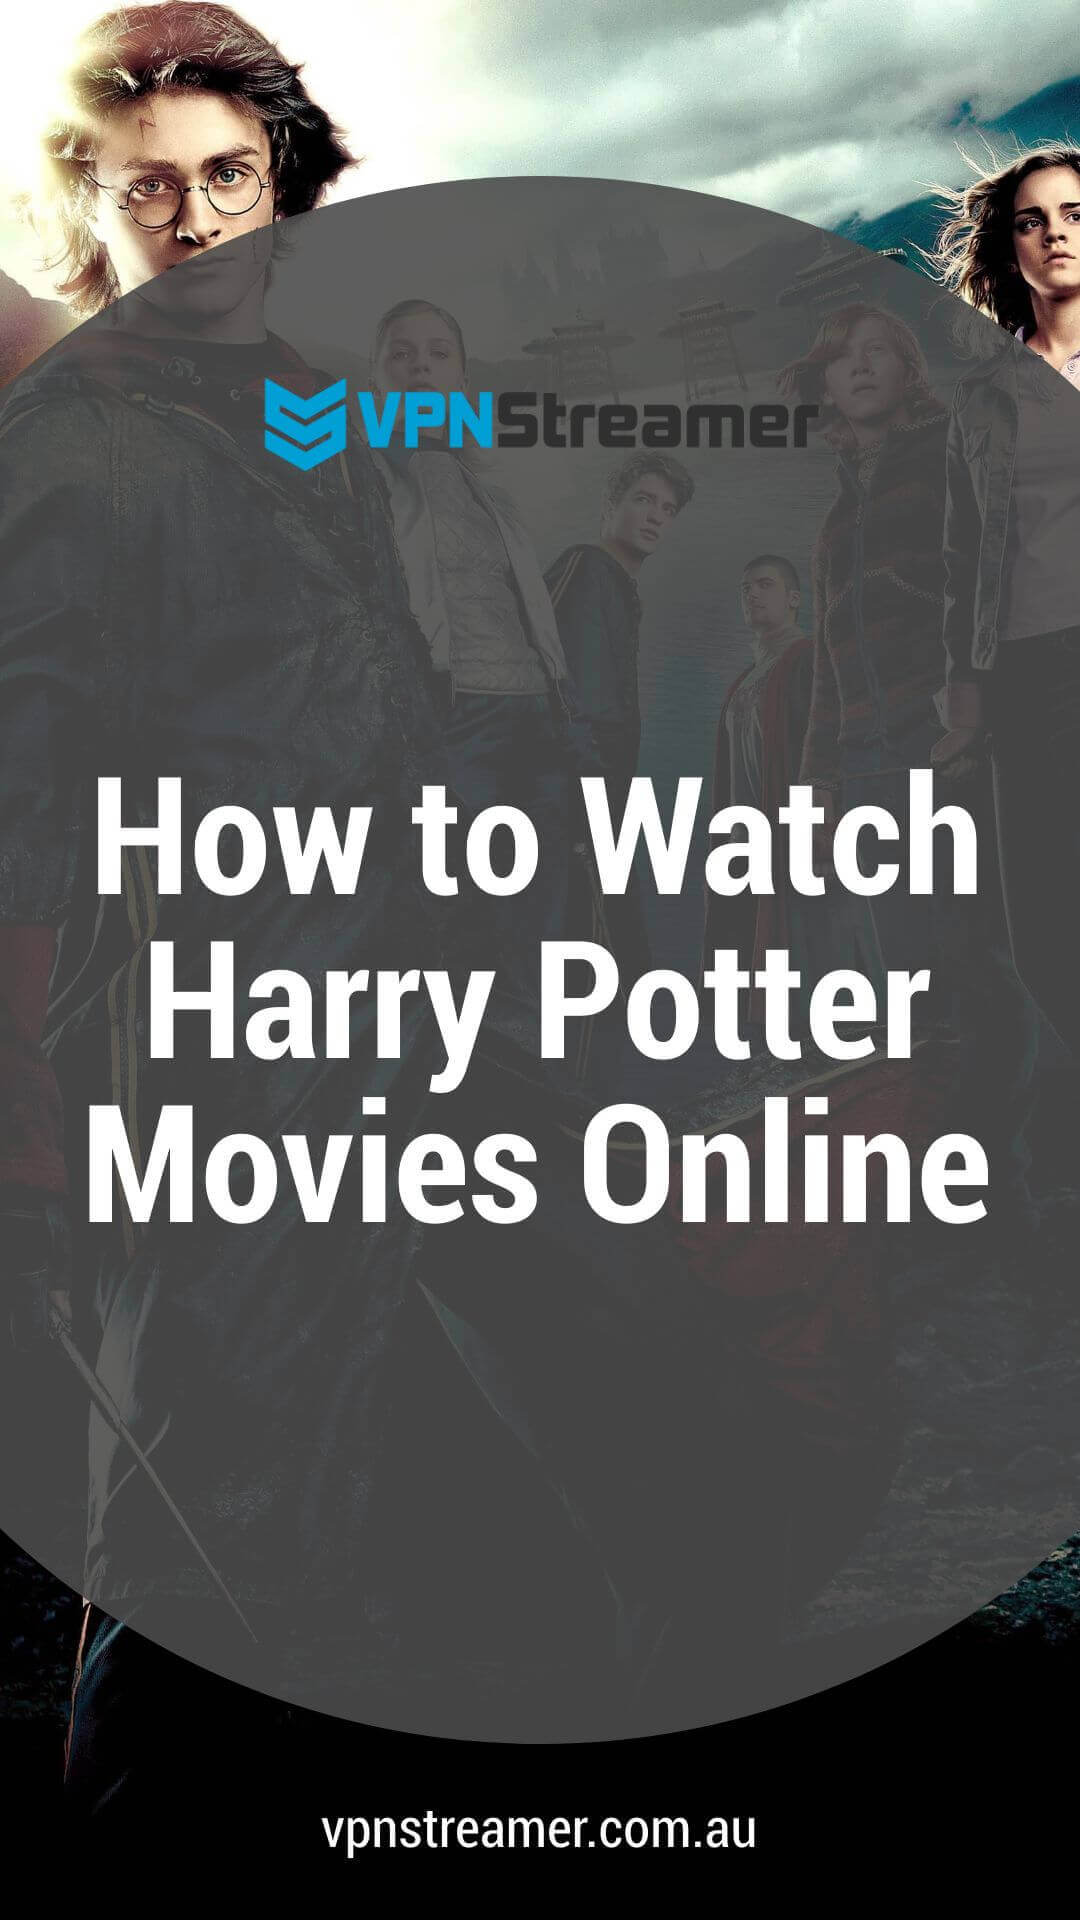 How to Watch Harry Potter Movies Online